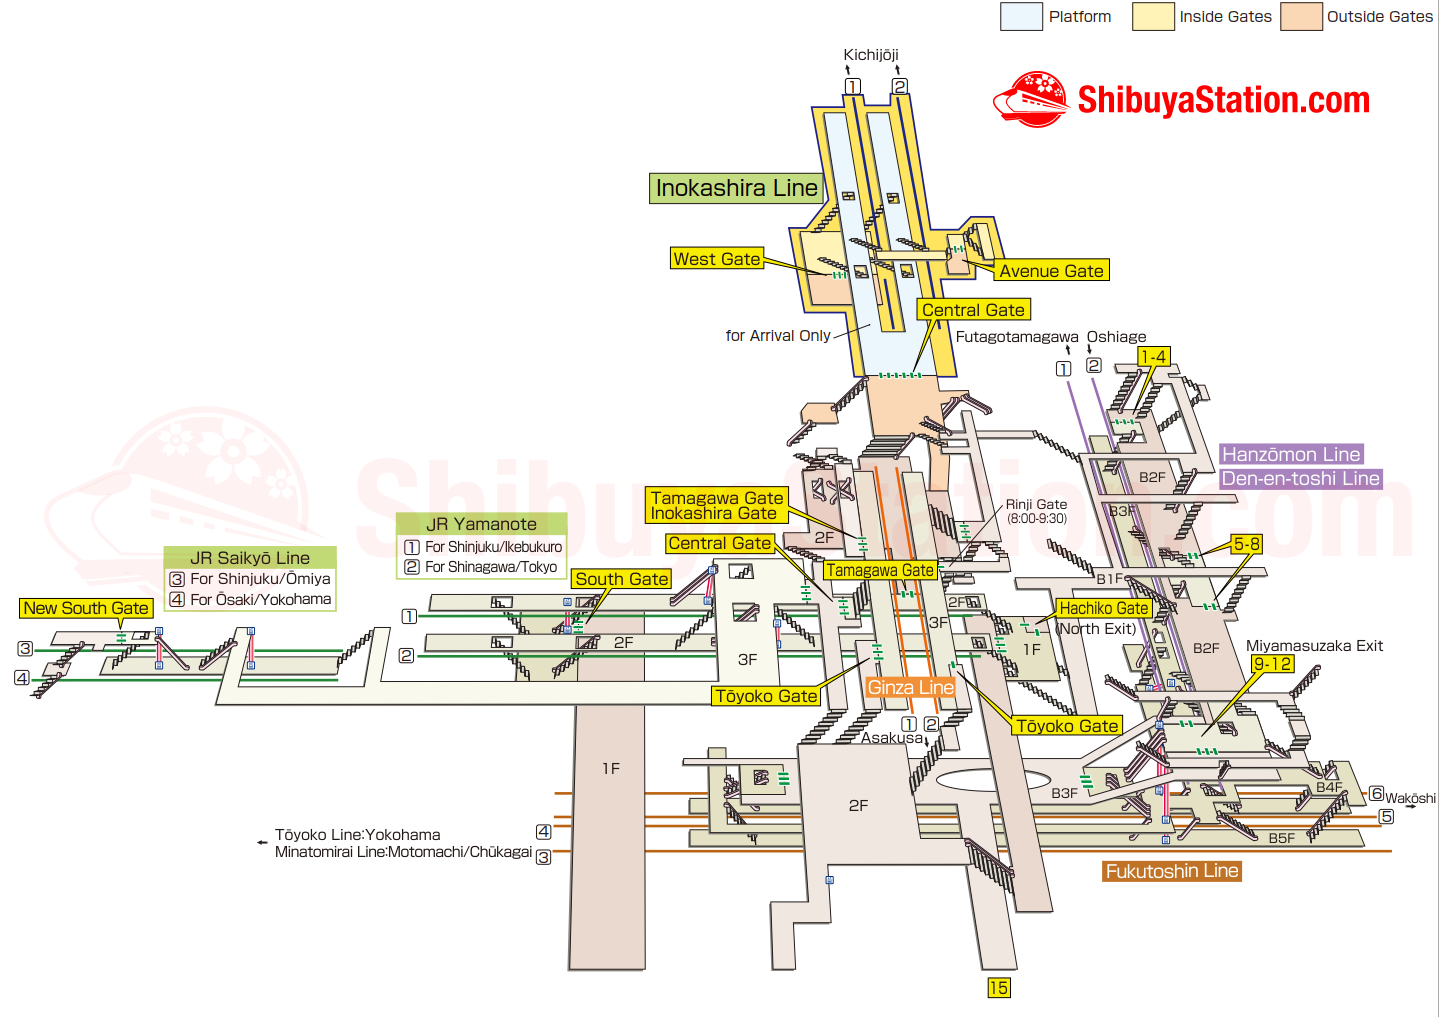 Yokohama Subway Map Pdf.Shibuya Station Map Finding Your Way Shibuya Station